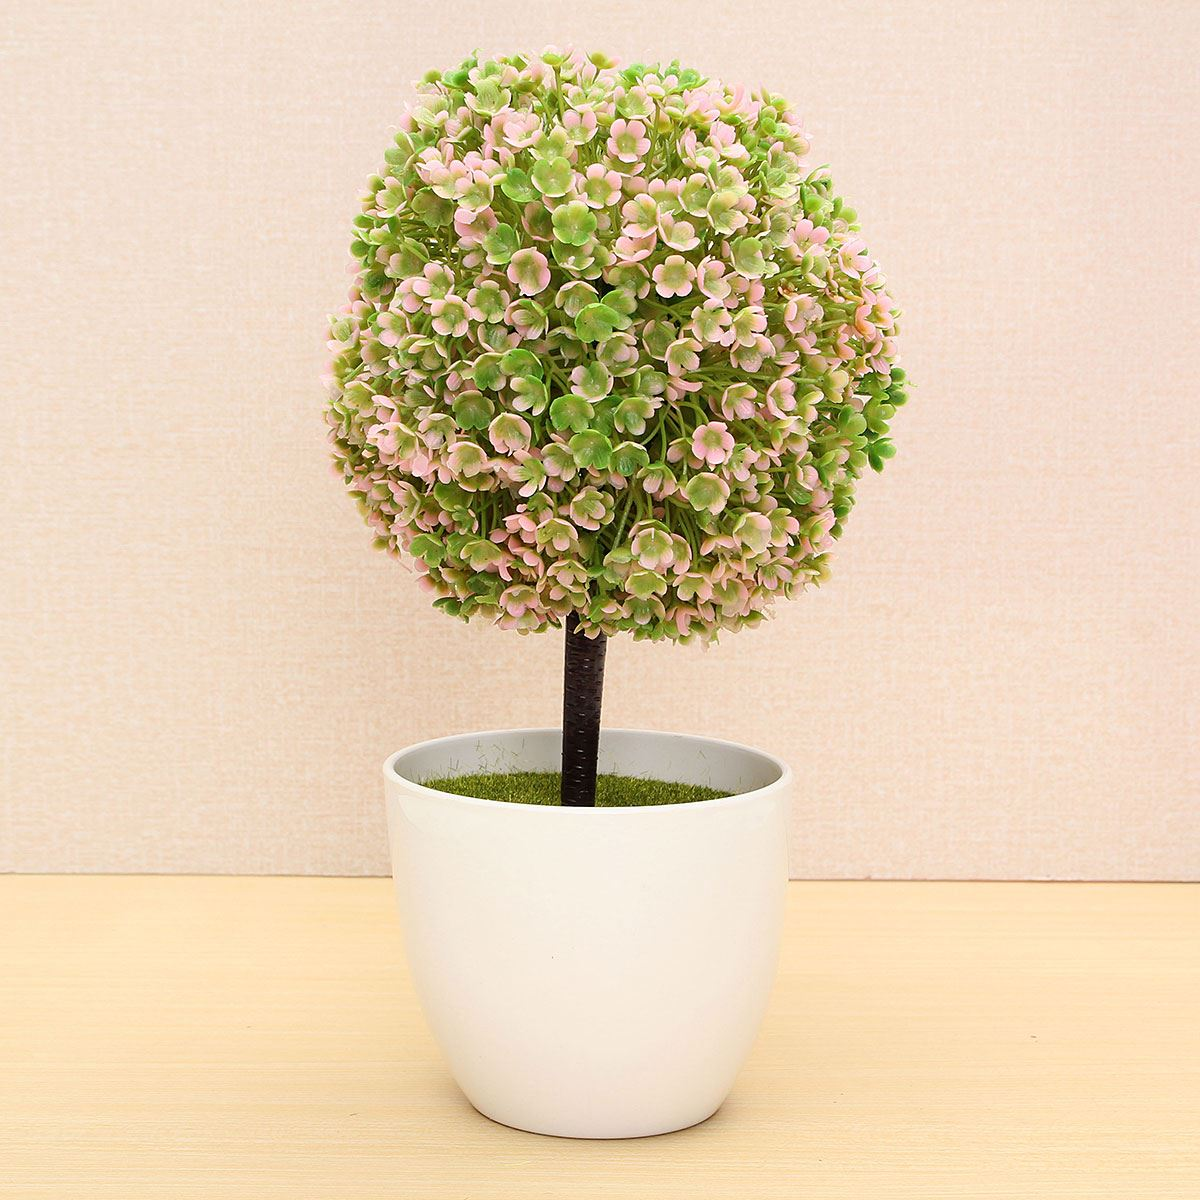 Artificial Topiary Tree Ball Plant Flowers Buxus Plants In